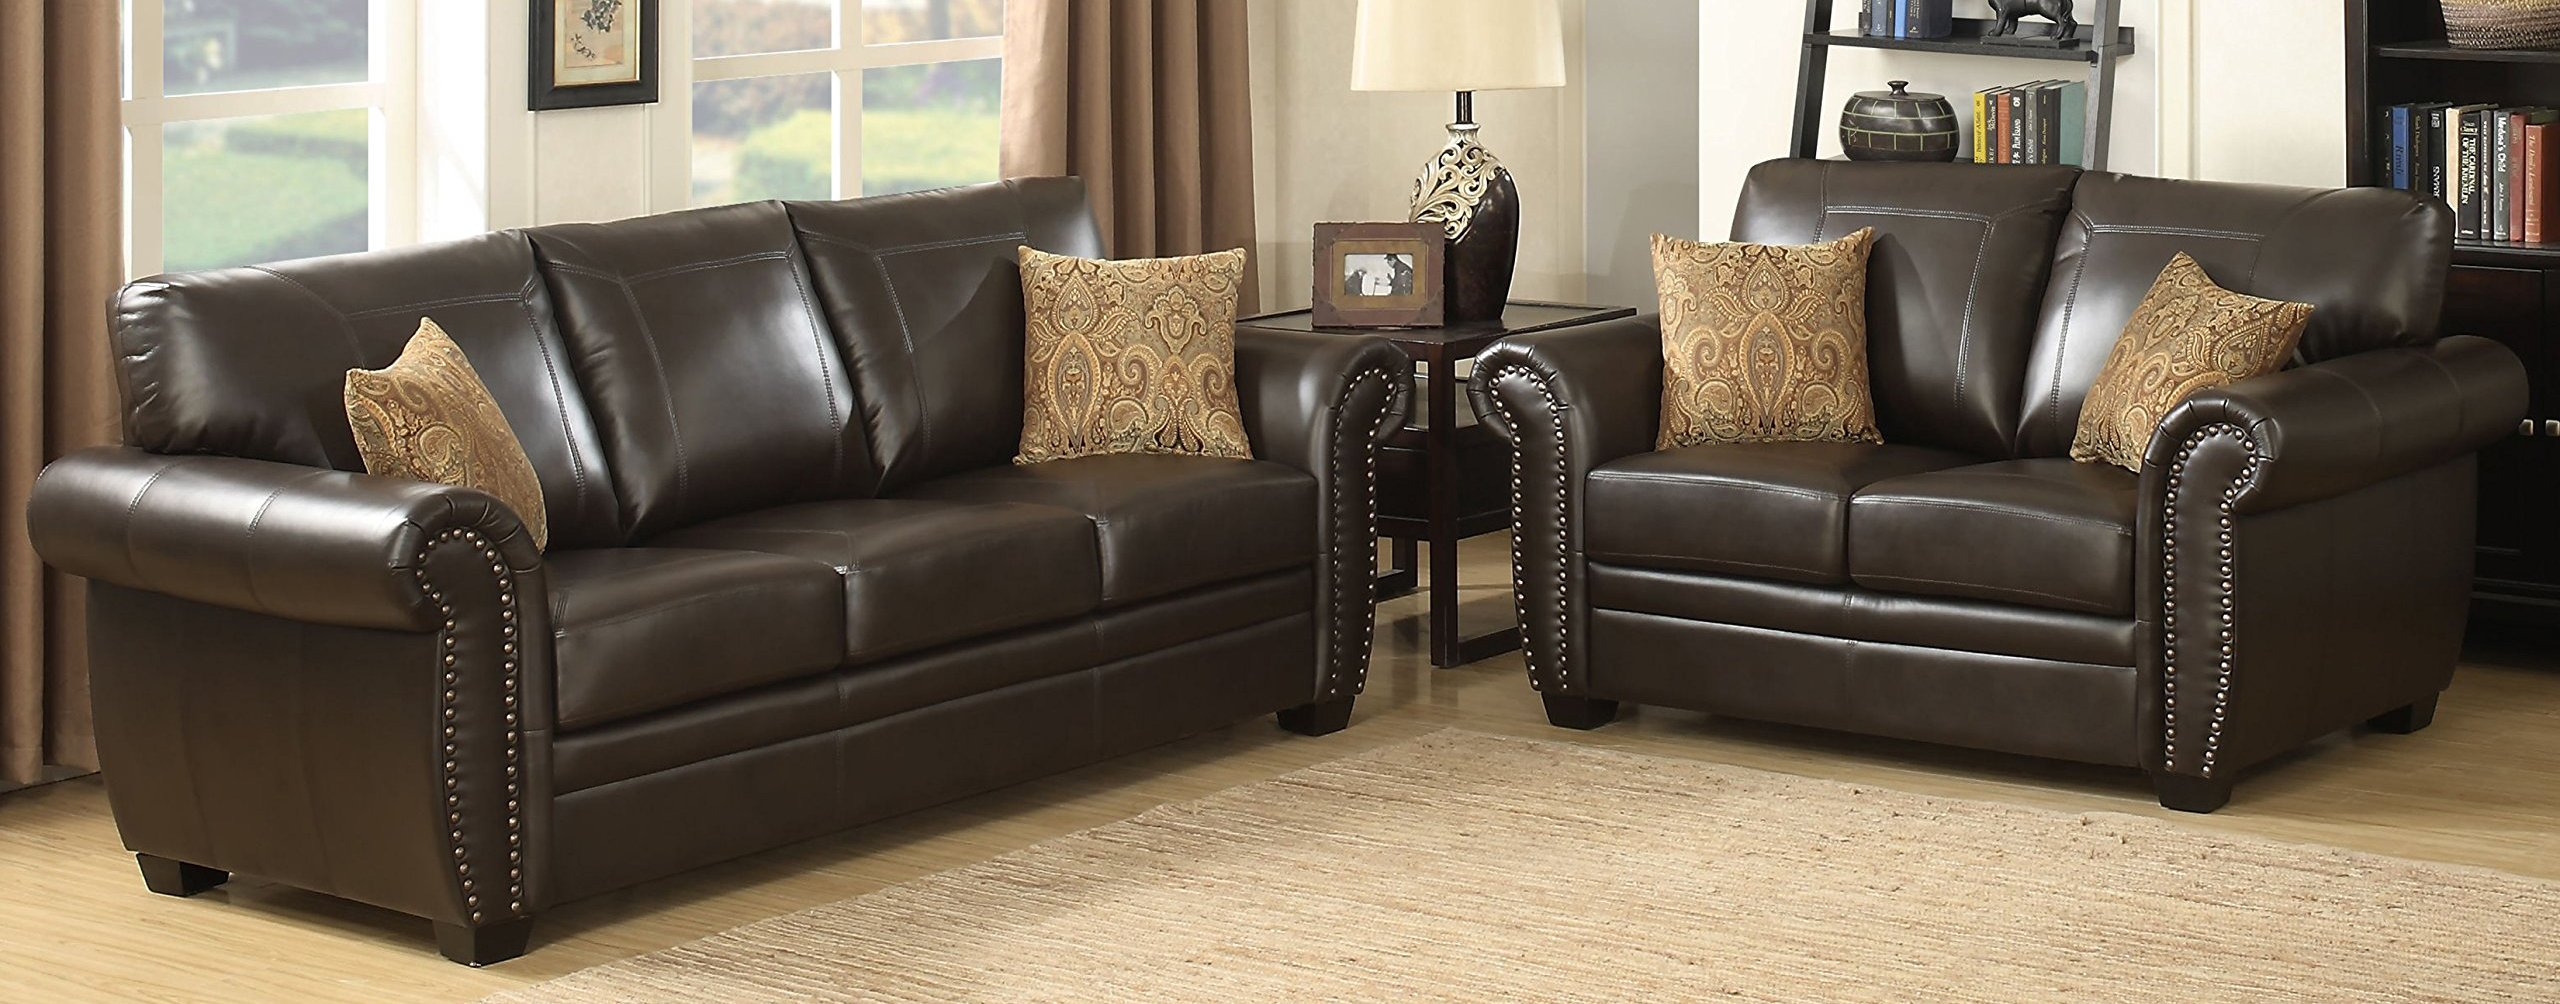 Christies Home Living 2 Piece Louis Traditional Fabric Stationary Sofa and Love Seat Living Room Set with Accented Nail Head Trim, Brown by Christies Home Living